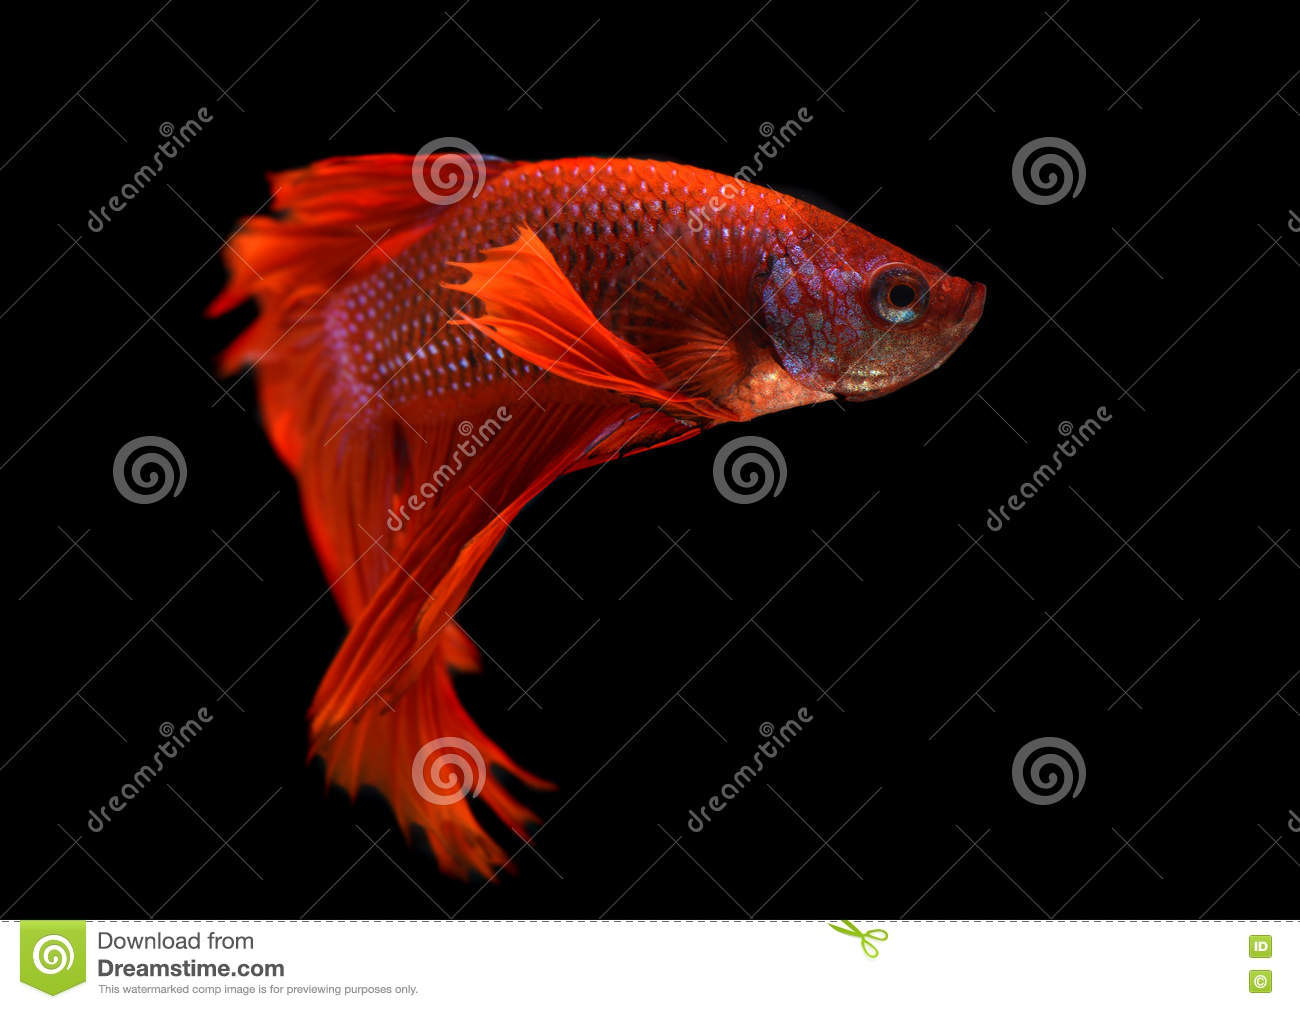 Betta Fish Or Siamese Fighting Fish Stock Image - Image of colorful ...